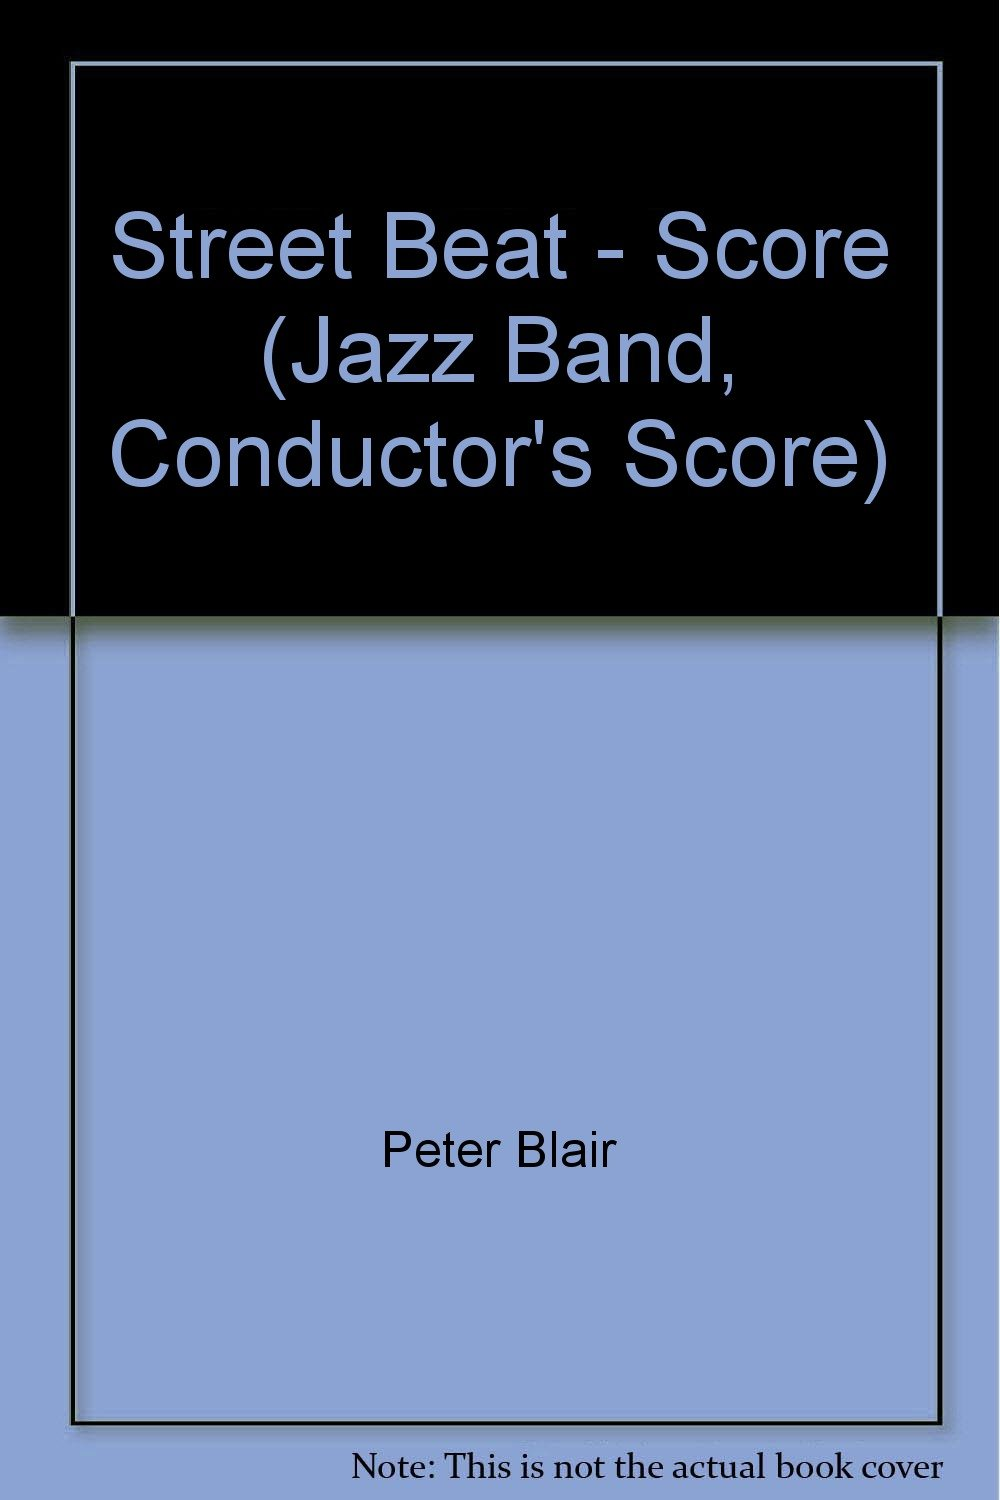 Download Street Beat - Score (Jazz Band, Conductor's Score) PDF